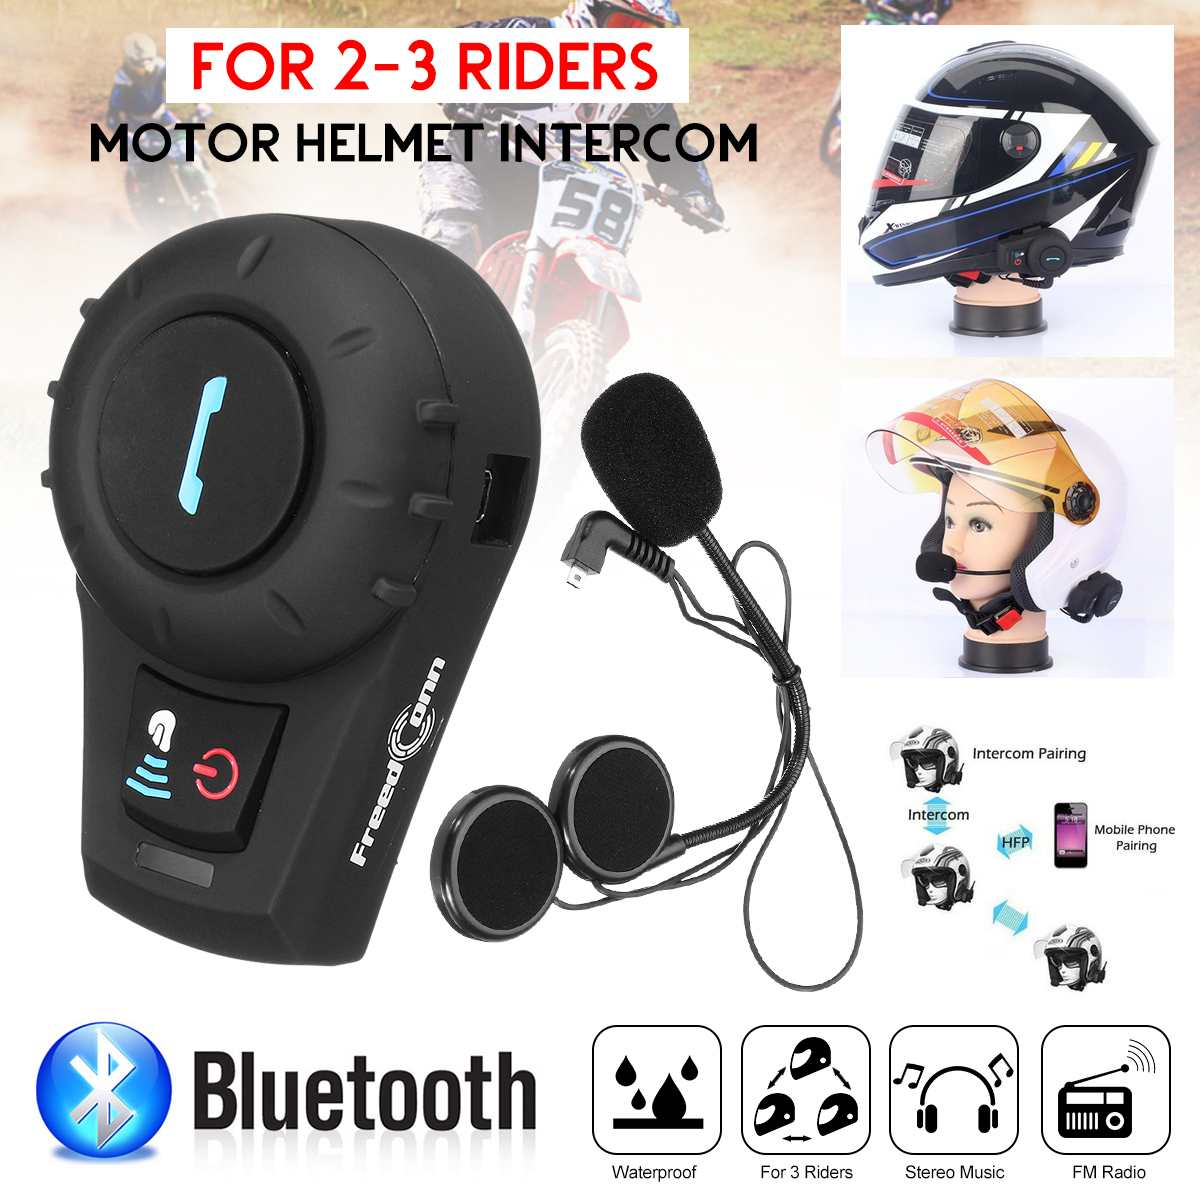 Motorcycle Helmet Intercom Up To 500M Distance  Headset BT Interphone With Bluetooth Function EU Or US Plug